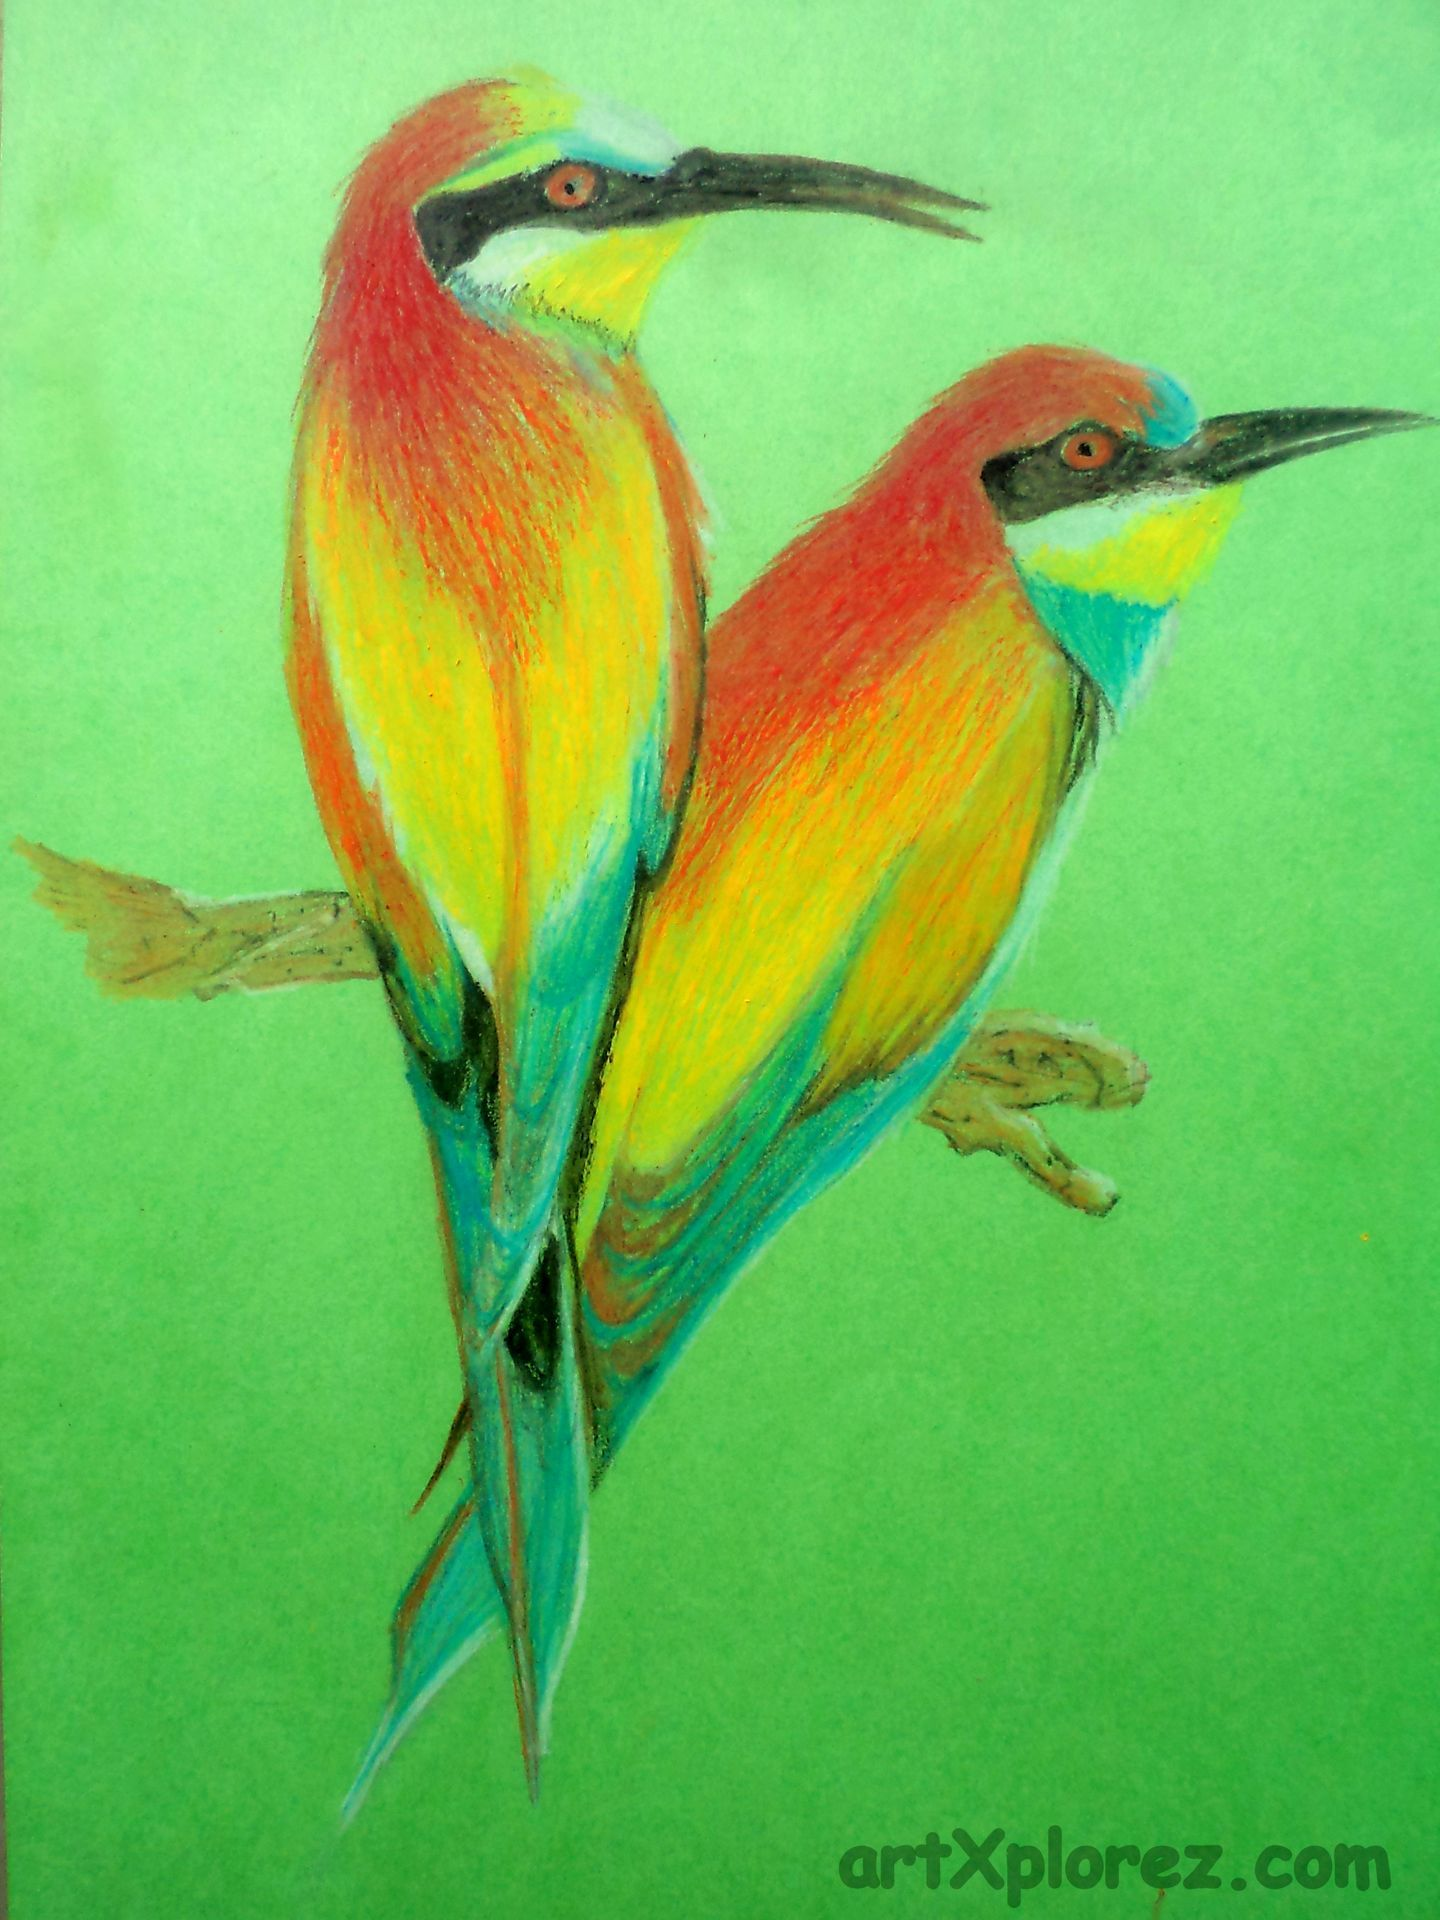 Drawing Birds Using Oil Pastels